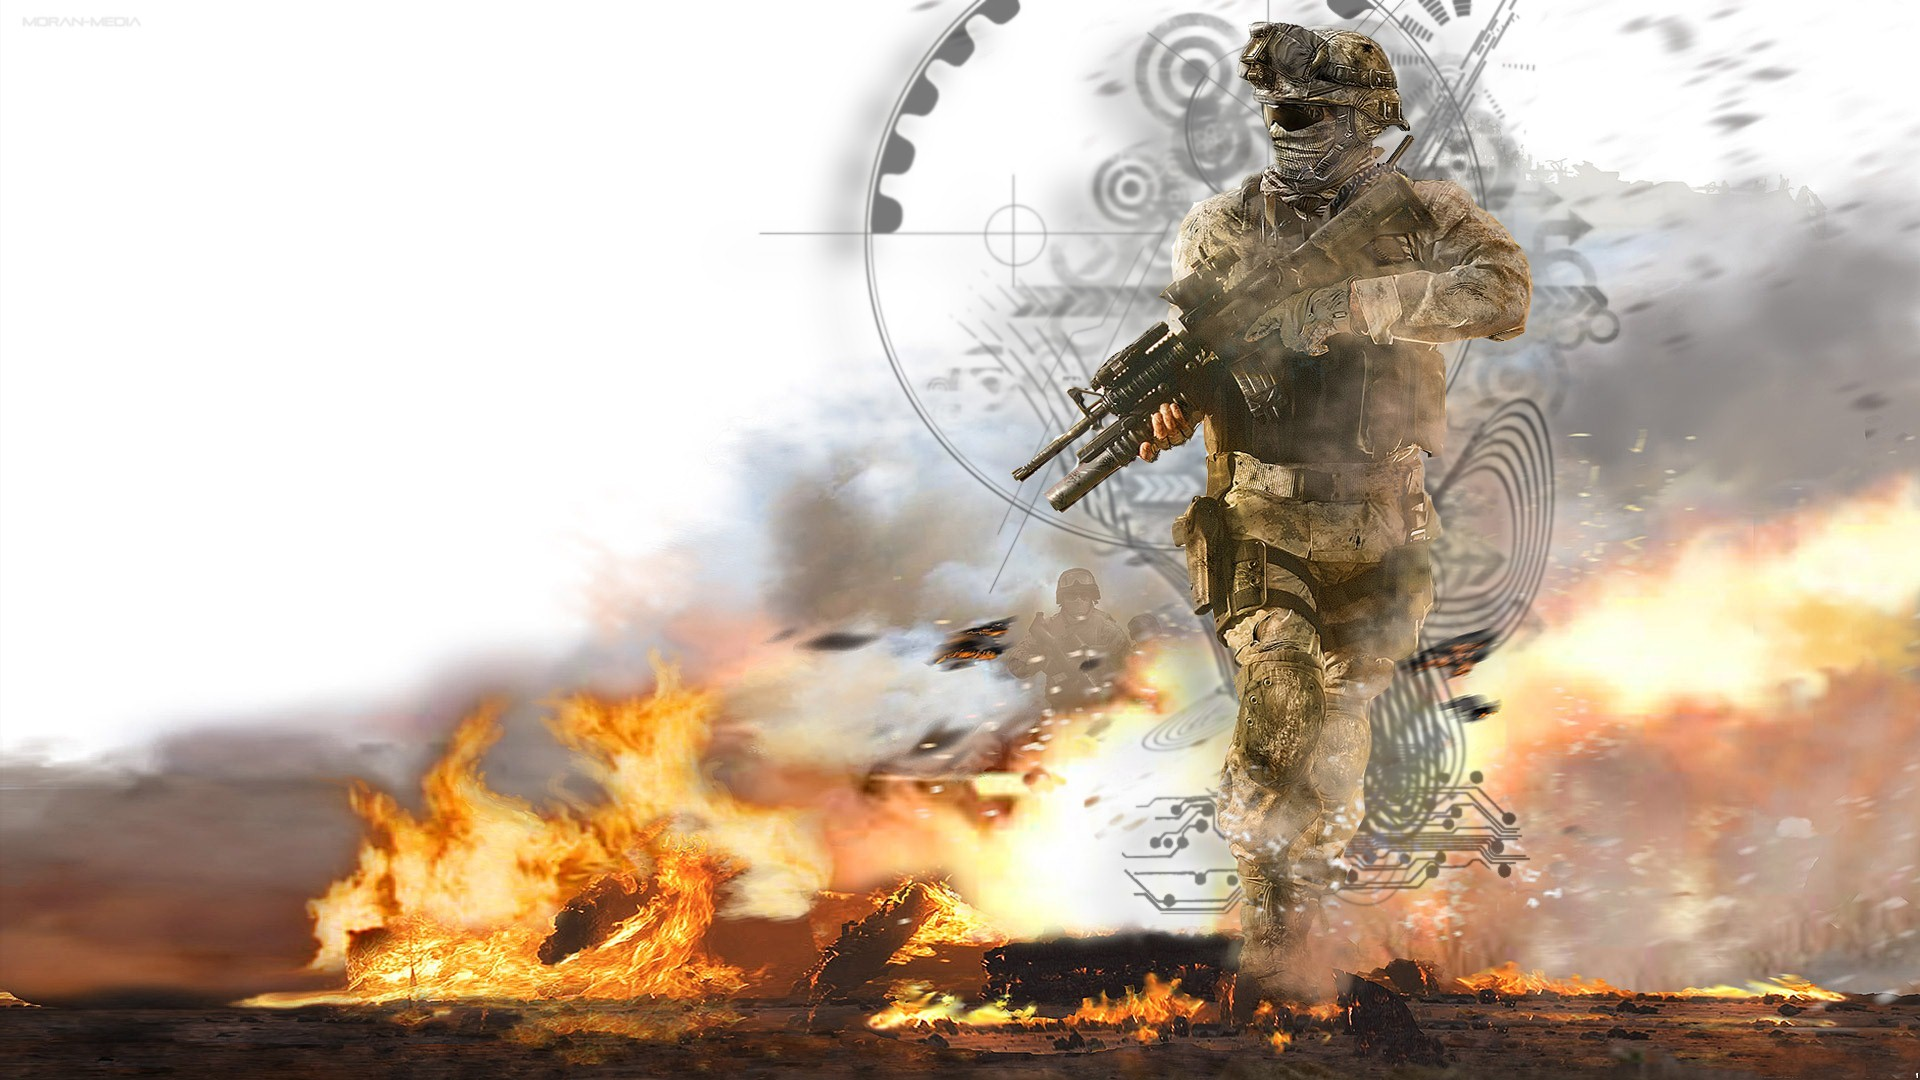 Indian Army Wallpapers For Desktop Hd: Download Indian Army Wallpaper Desktop Gallery